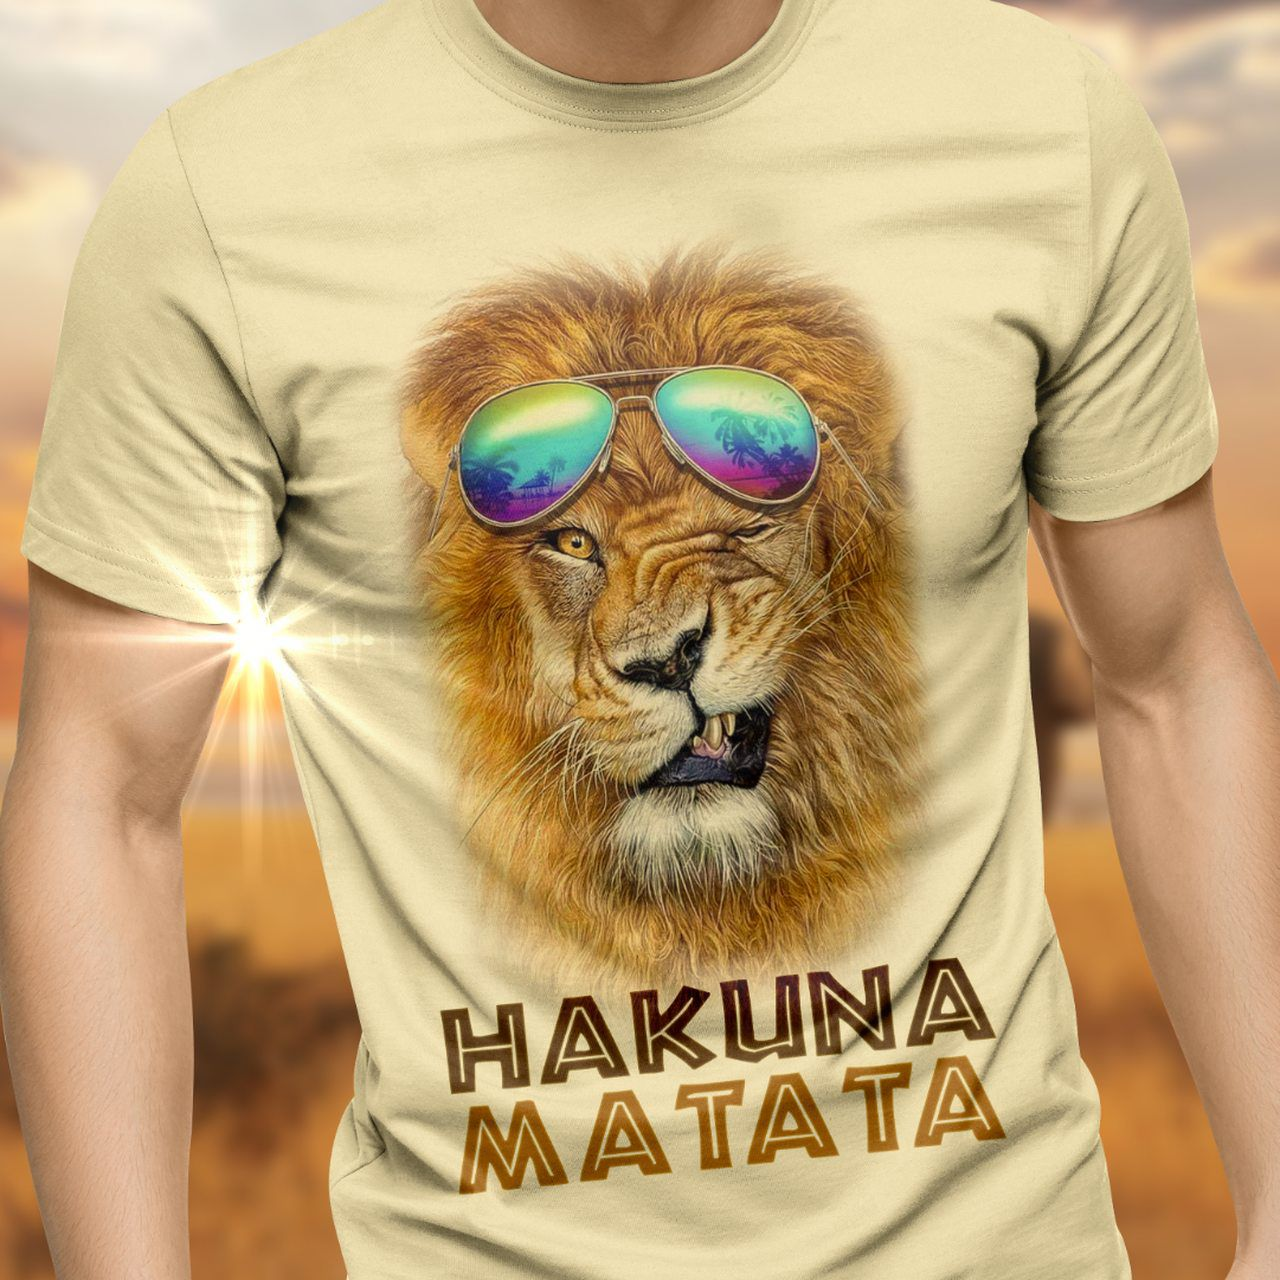 Camiseta Hakuna Matata: O Rei Leão (The Lion King) Serie Art Premium - Exclusiva Toyshow